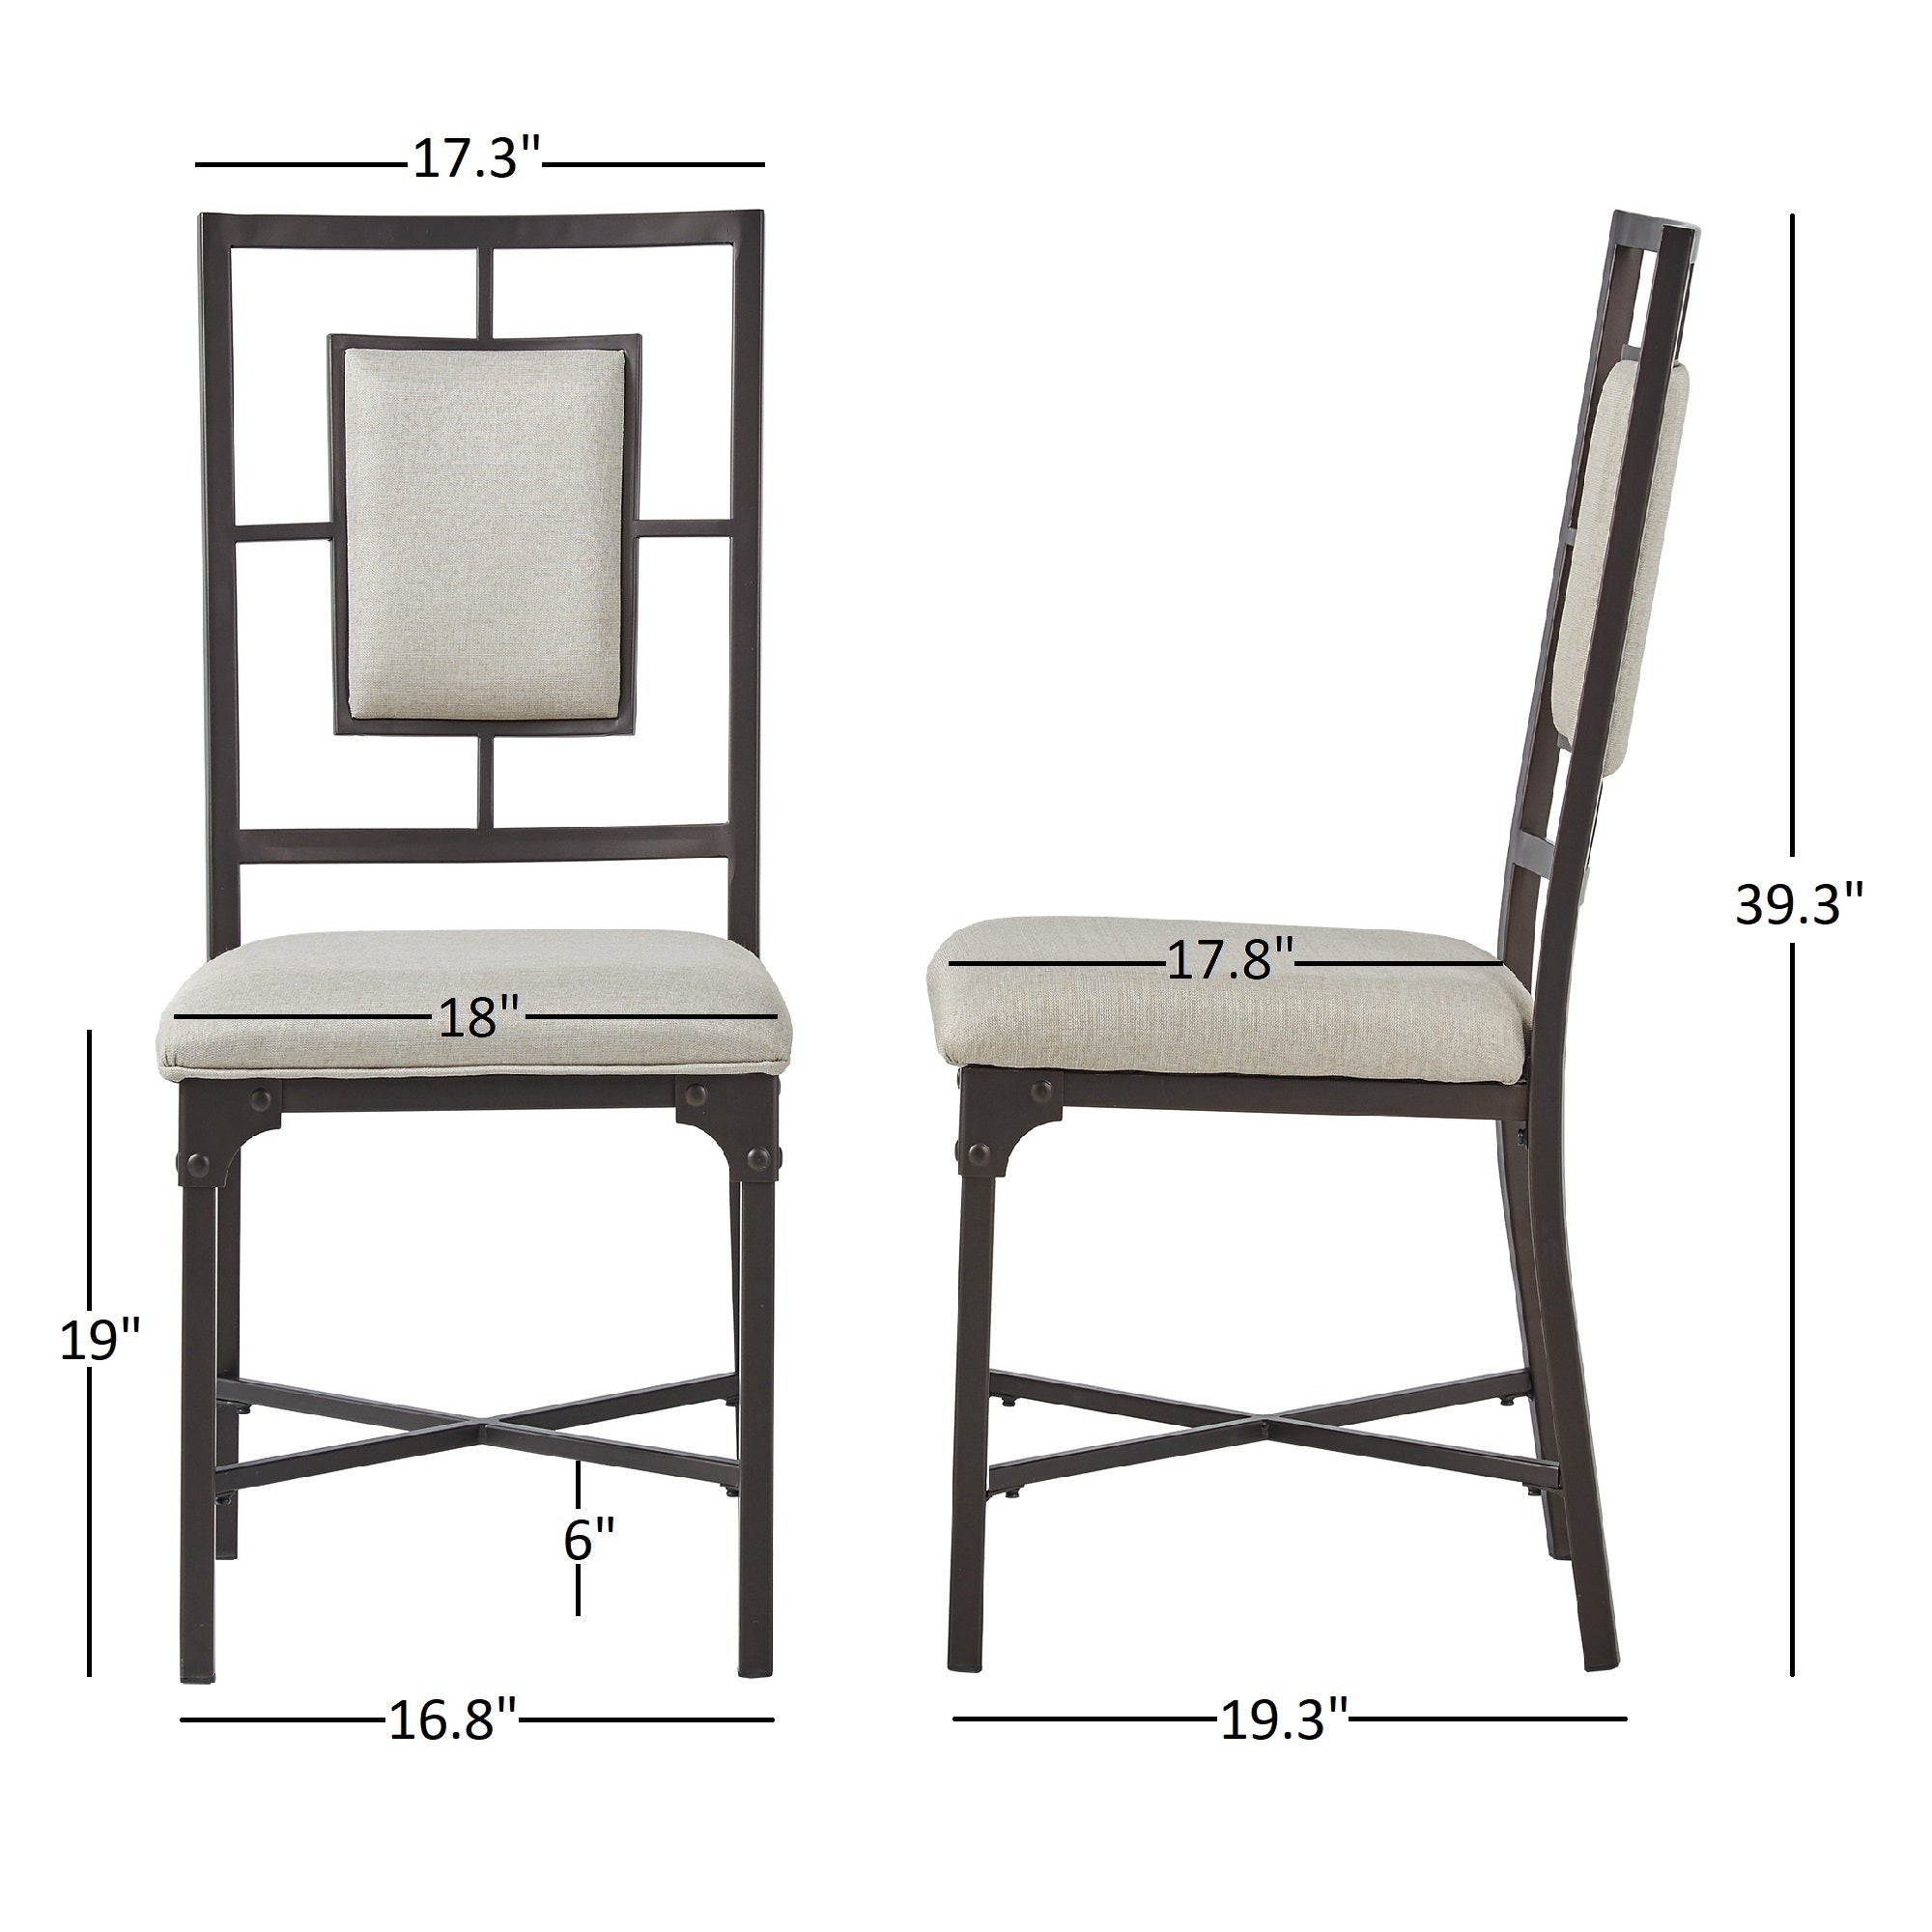 desk furniture dining mondiana products alma dania chair chairs